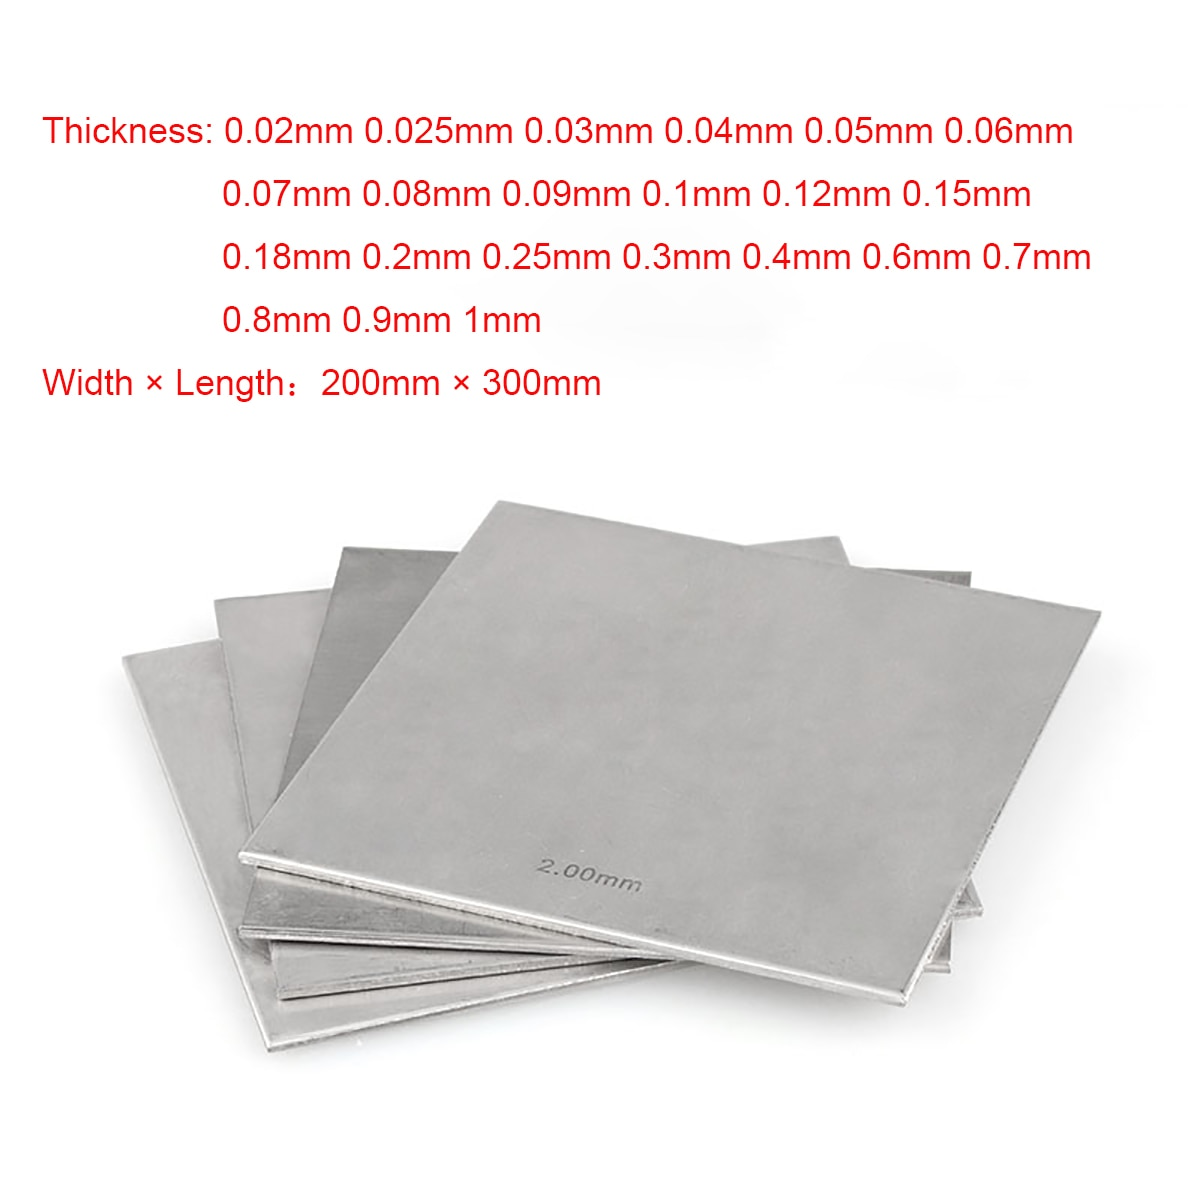 customized authentic 304 321 316 stainless steel col rolled bright thin foil tape strip sheet plate coil roll 5pcs 200x300mm 304 Stainless Steel Square Plate Polished Plate Sheet Thickness 0.02 to 1mm